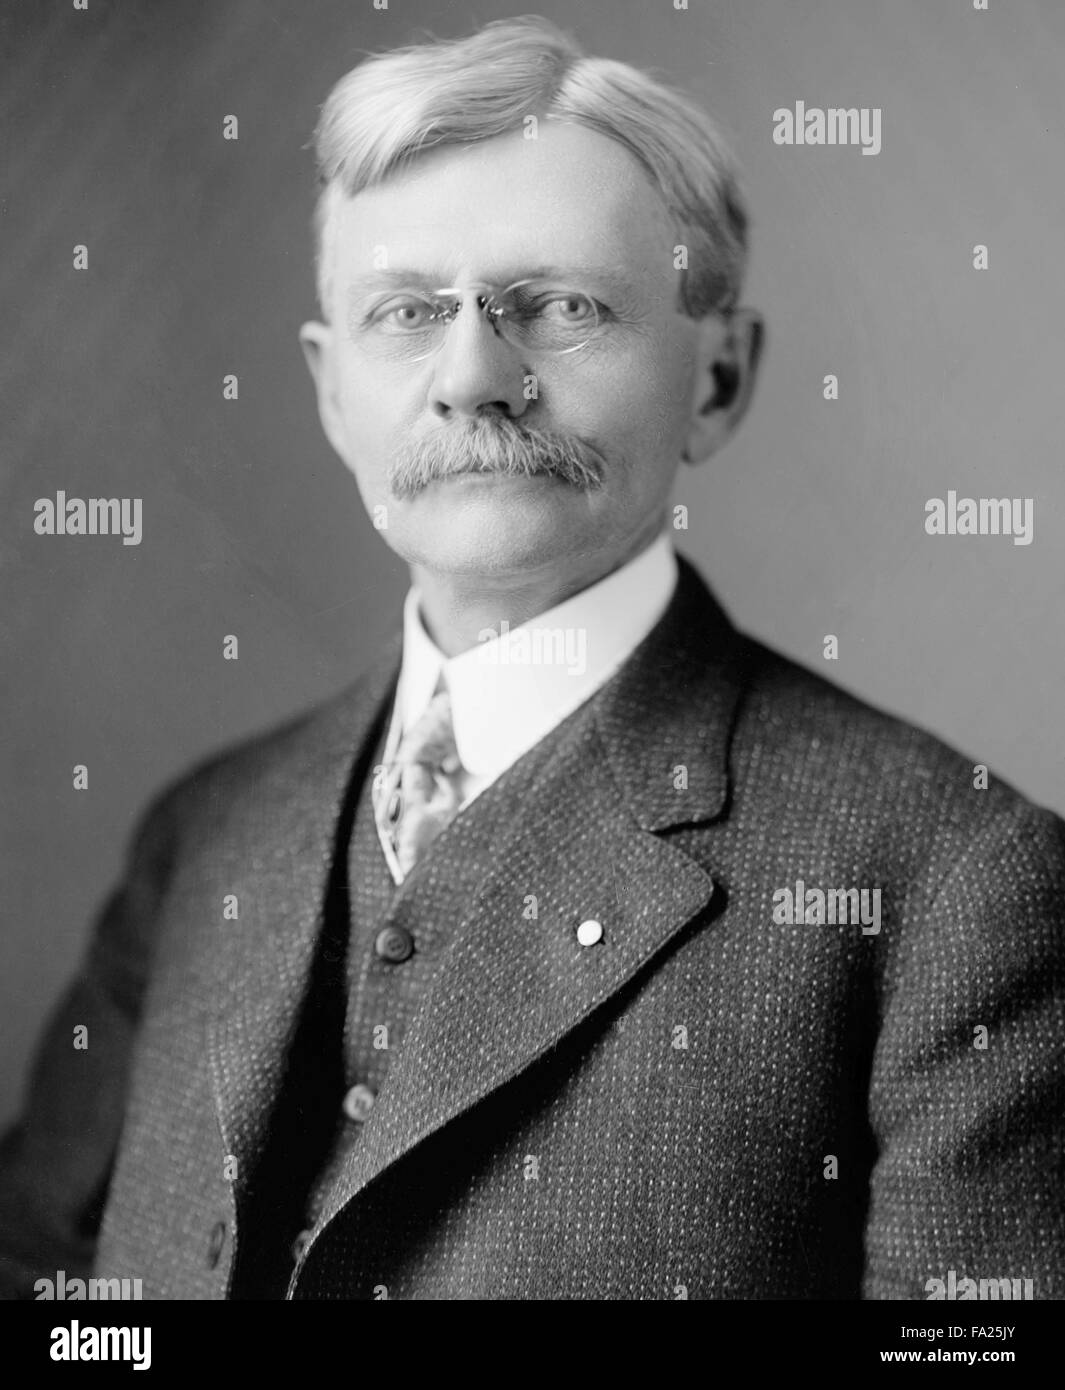 Thomas Riley Marshall, American Democratic politician who served as the 28th Vice President of the United States - Stock Image